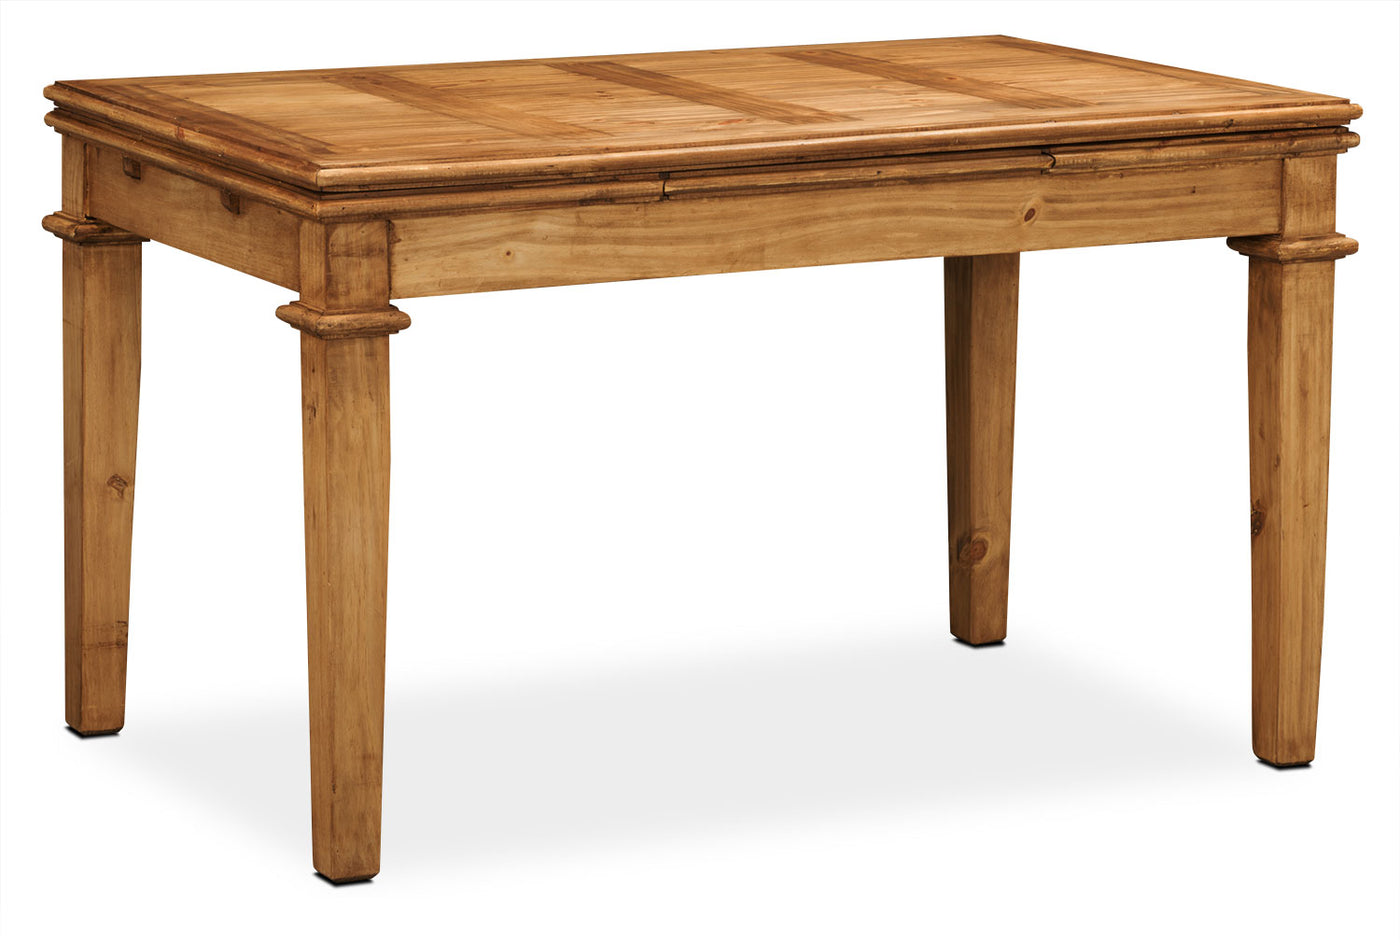 Santa Fe Rusticos Solid Pine Dining Table The Brick